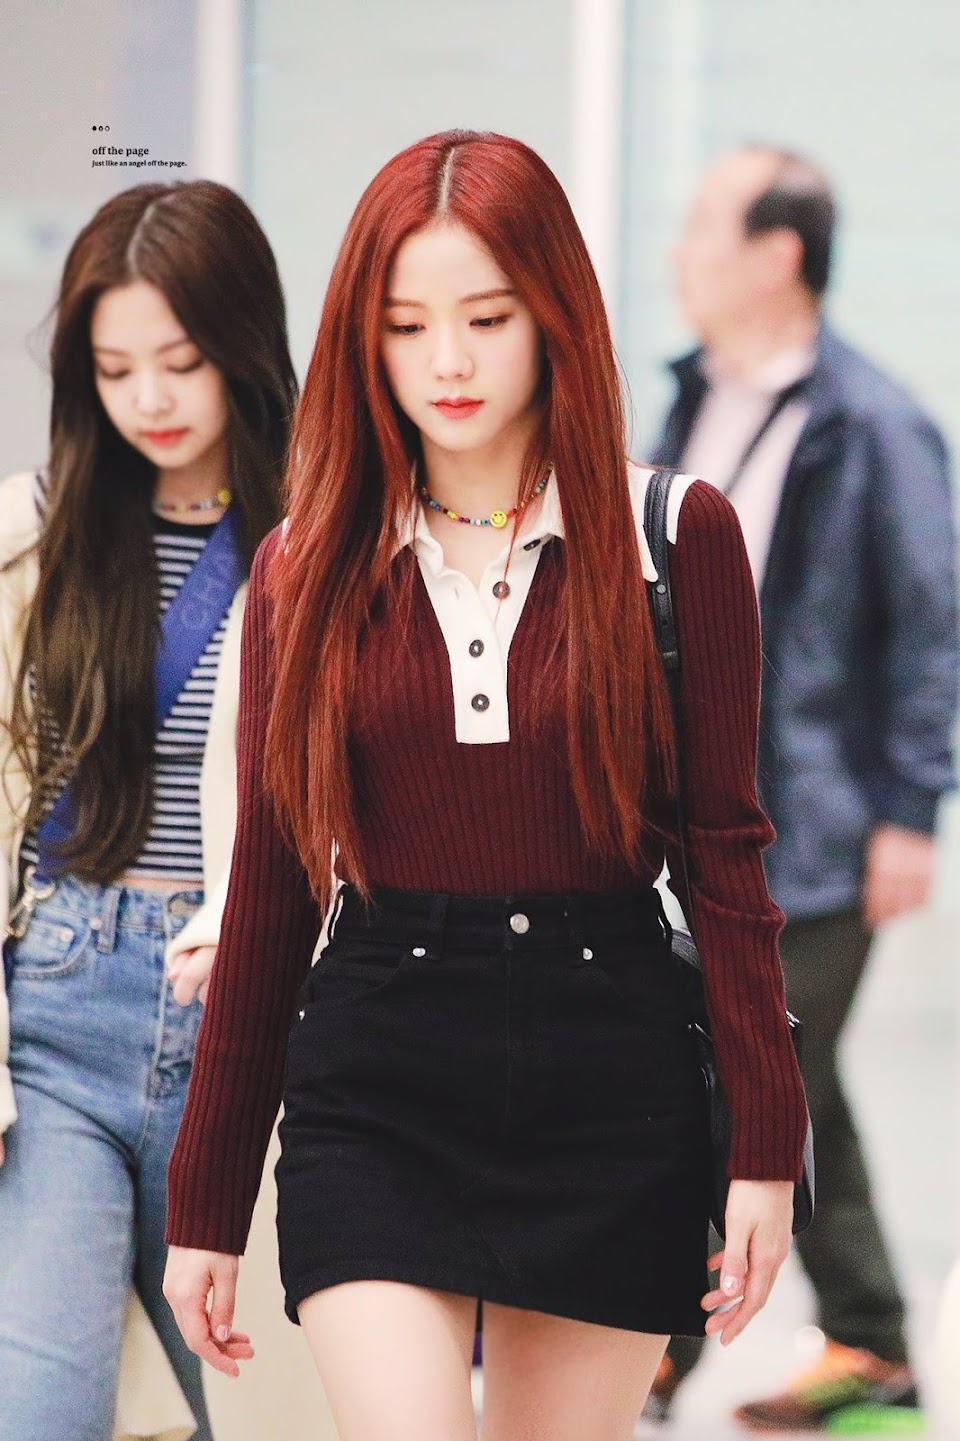 12-BLACKPINK-Jisoo-Airport-Photos-Incheon-from-Bangkok-11-April-2019